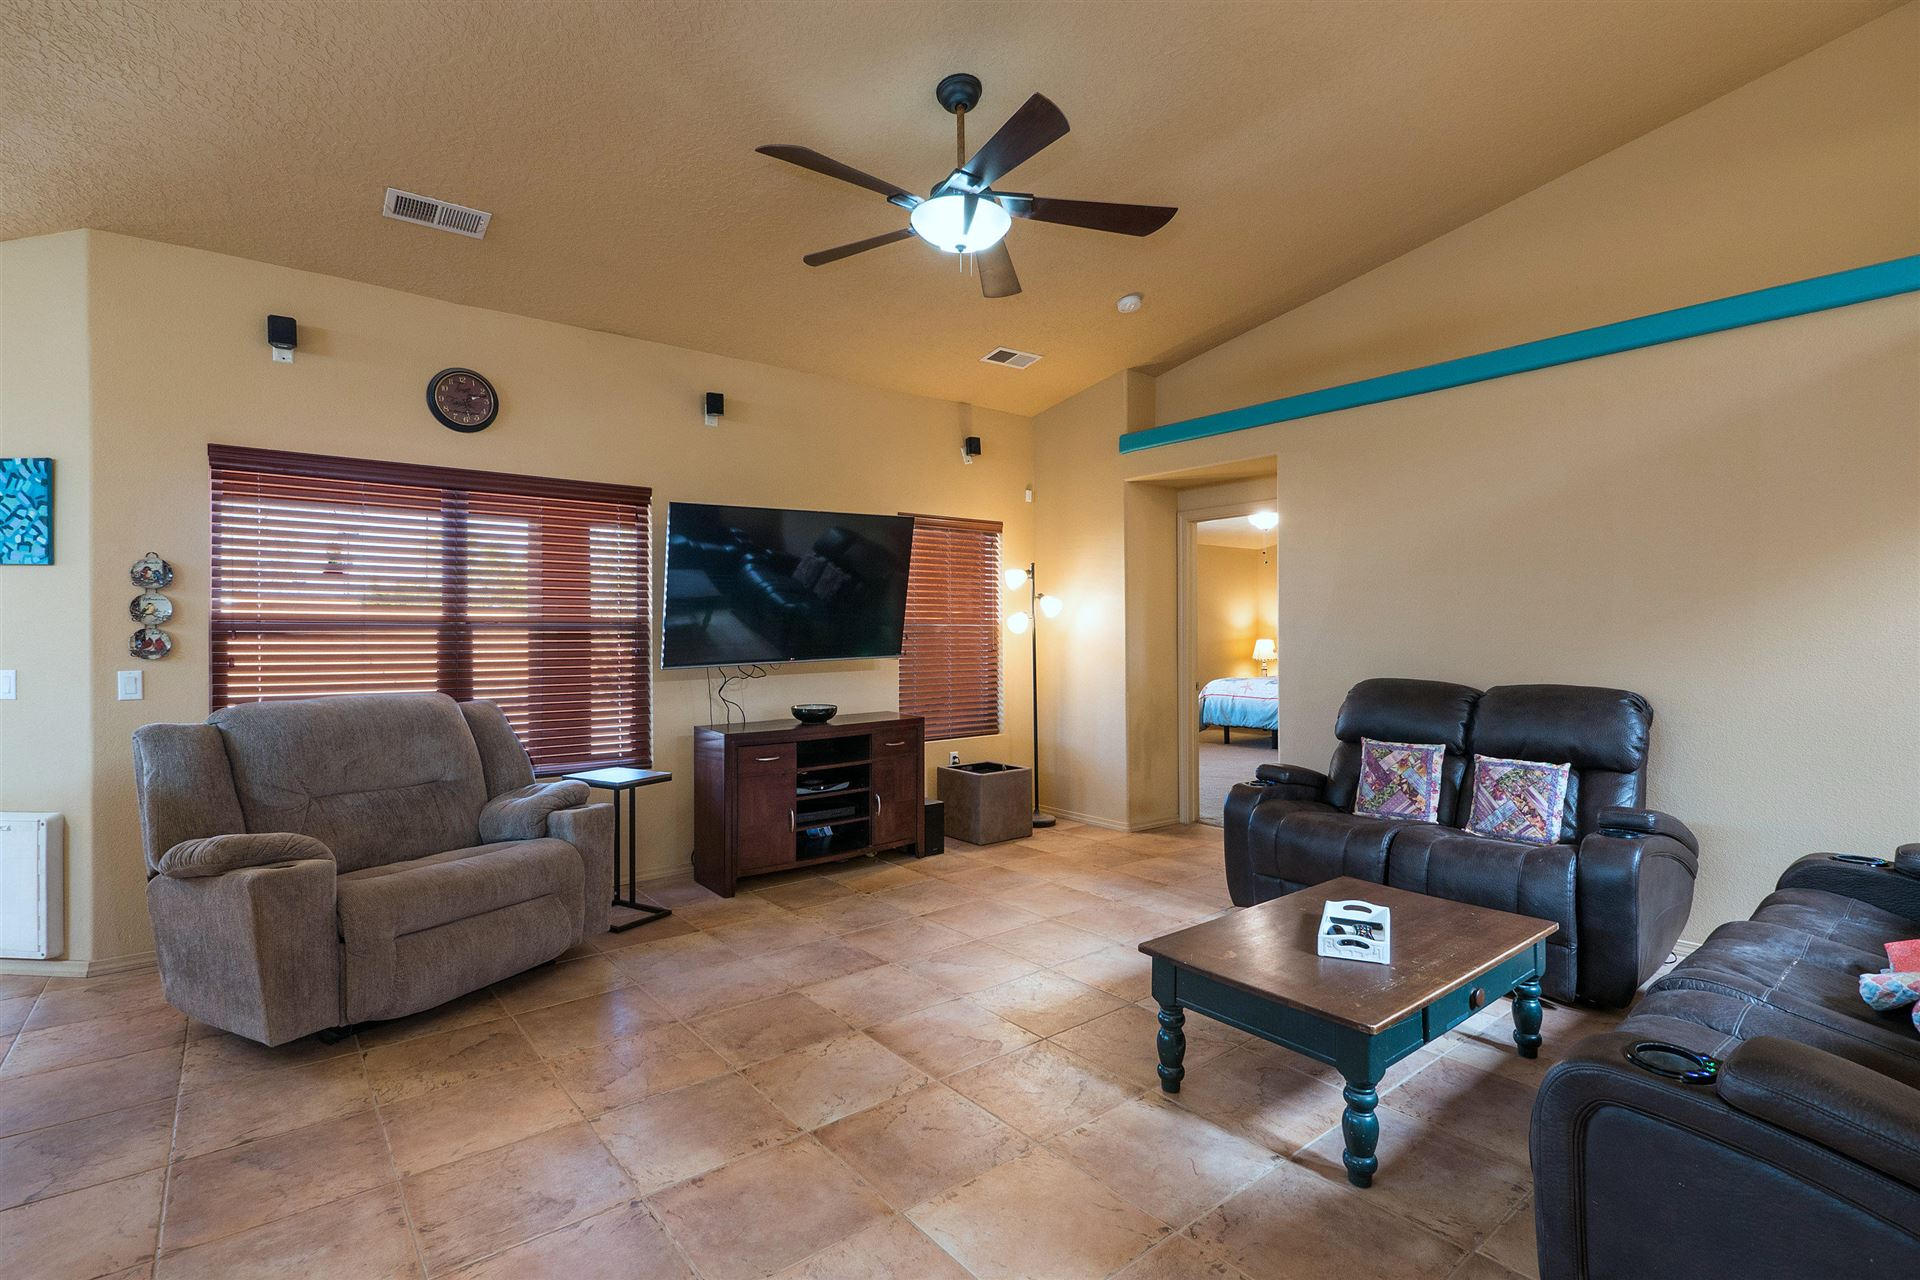 Photo of 5937 CHACO Loop NE, Rio Rancho, NM 87144 (MLS # 977766)